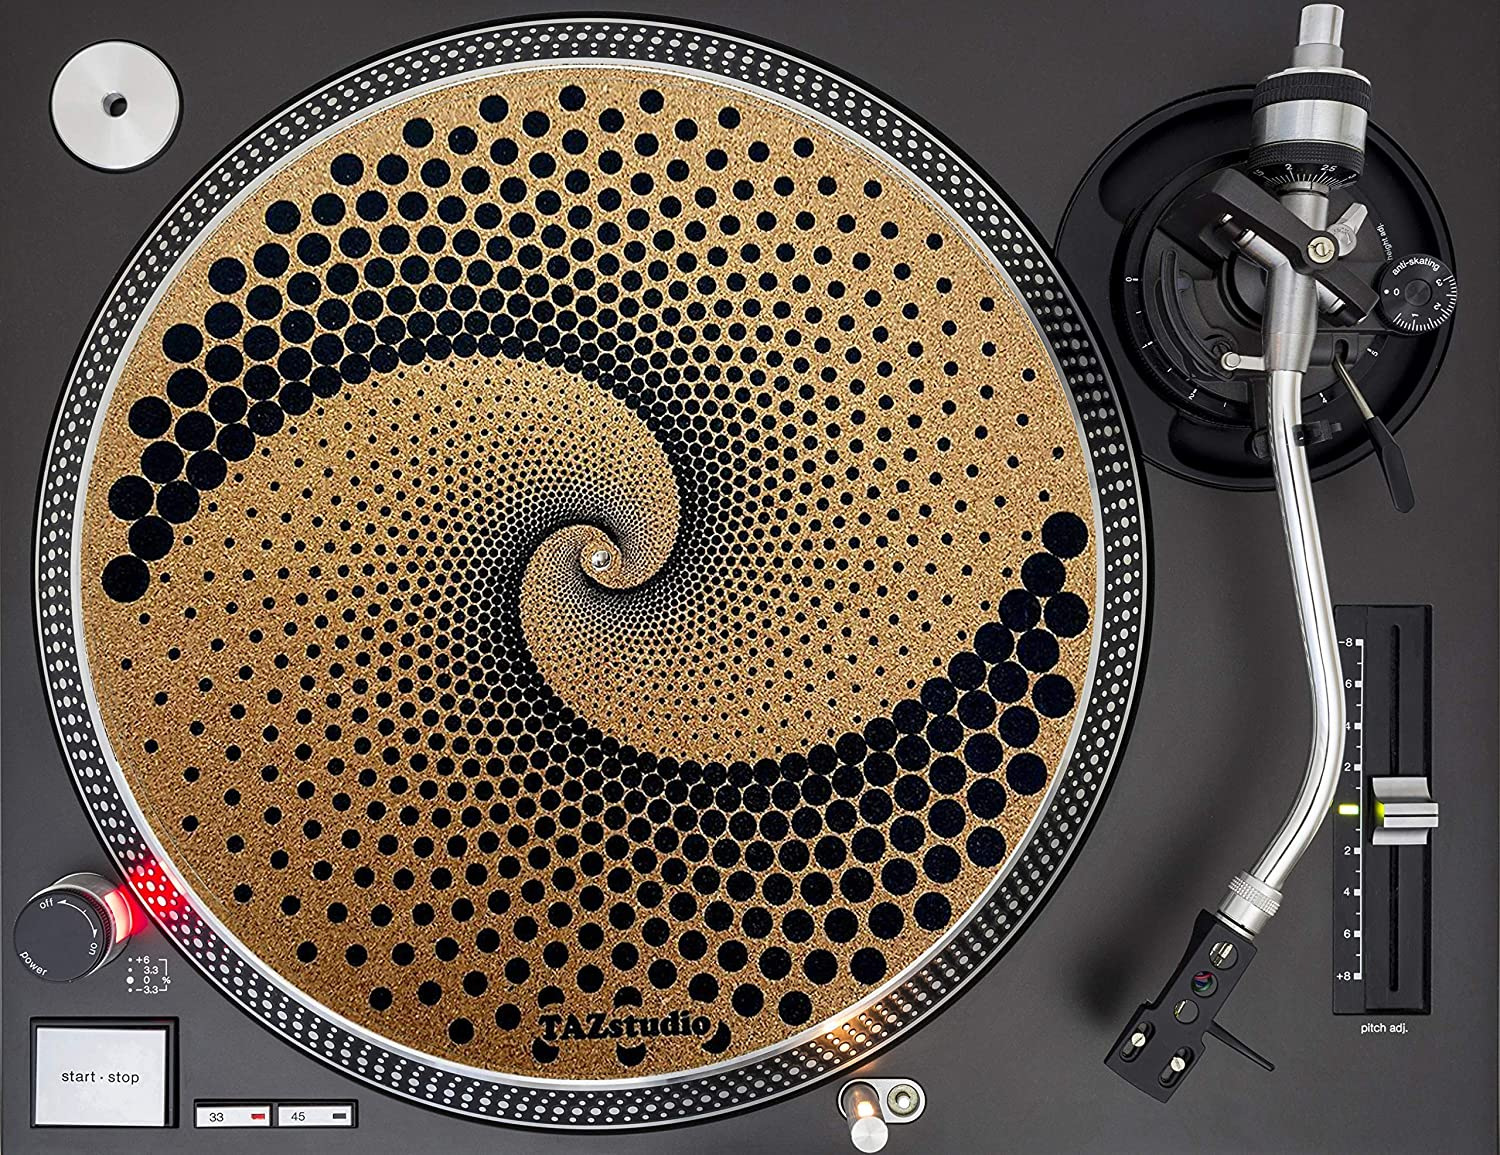 Taz Studio Turntable cork Slipmat